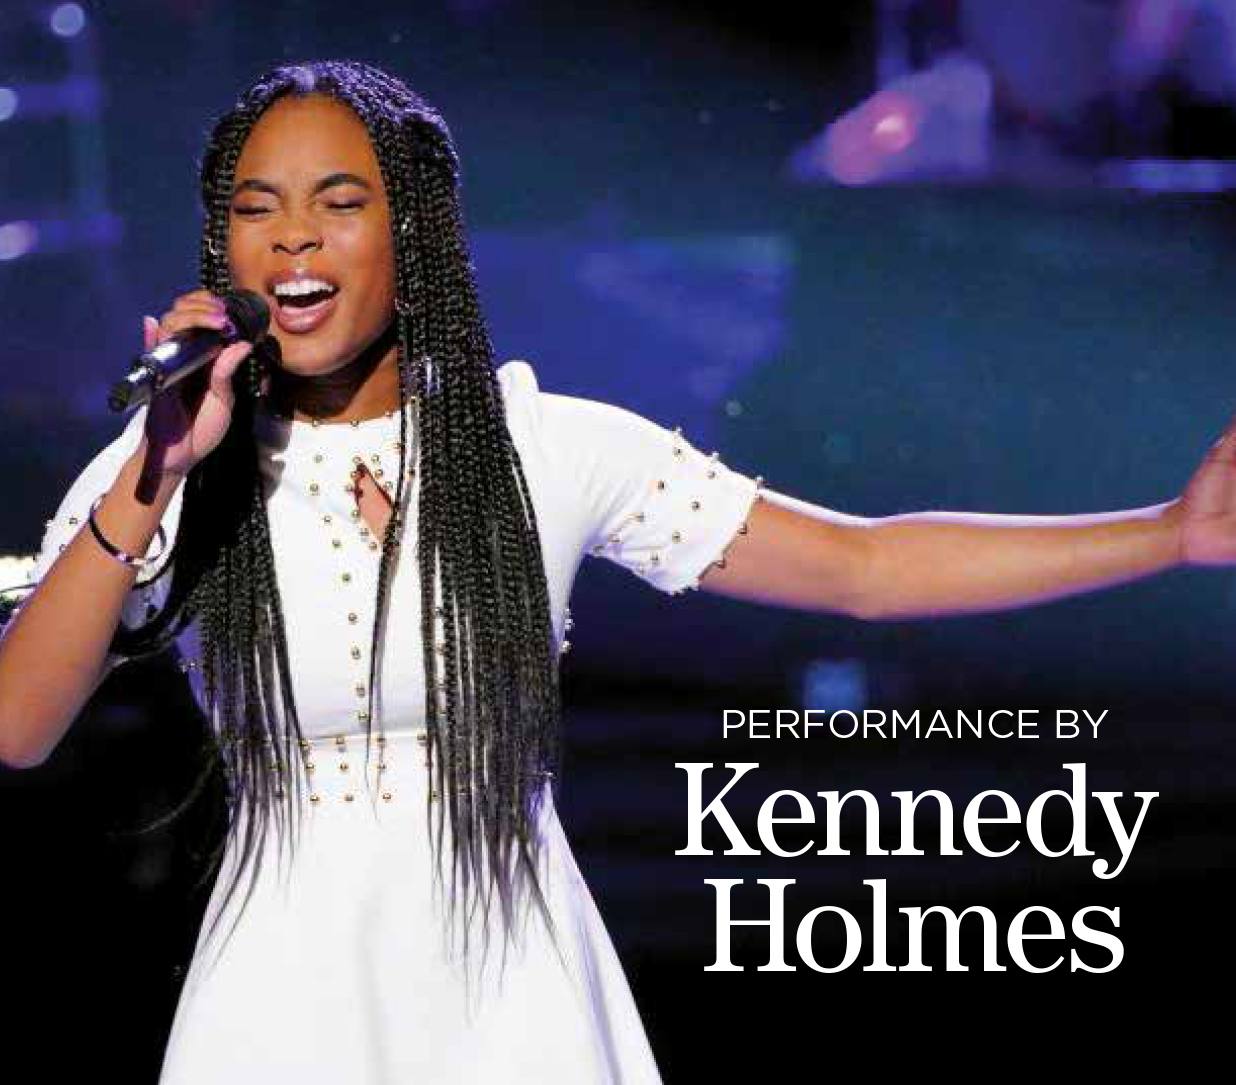 Performance by Kennedy Holmes